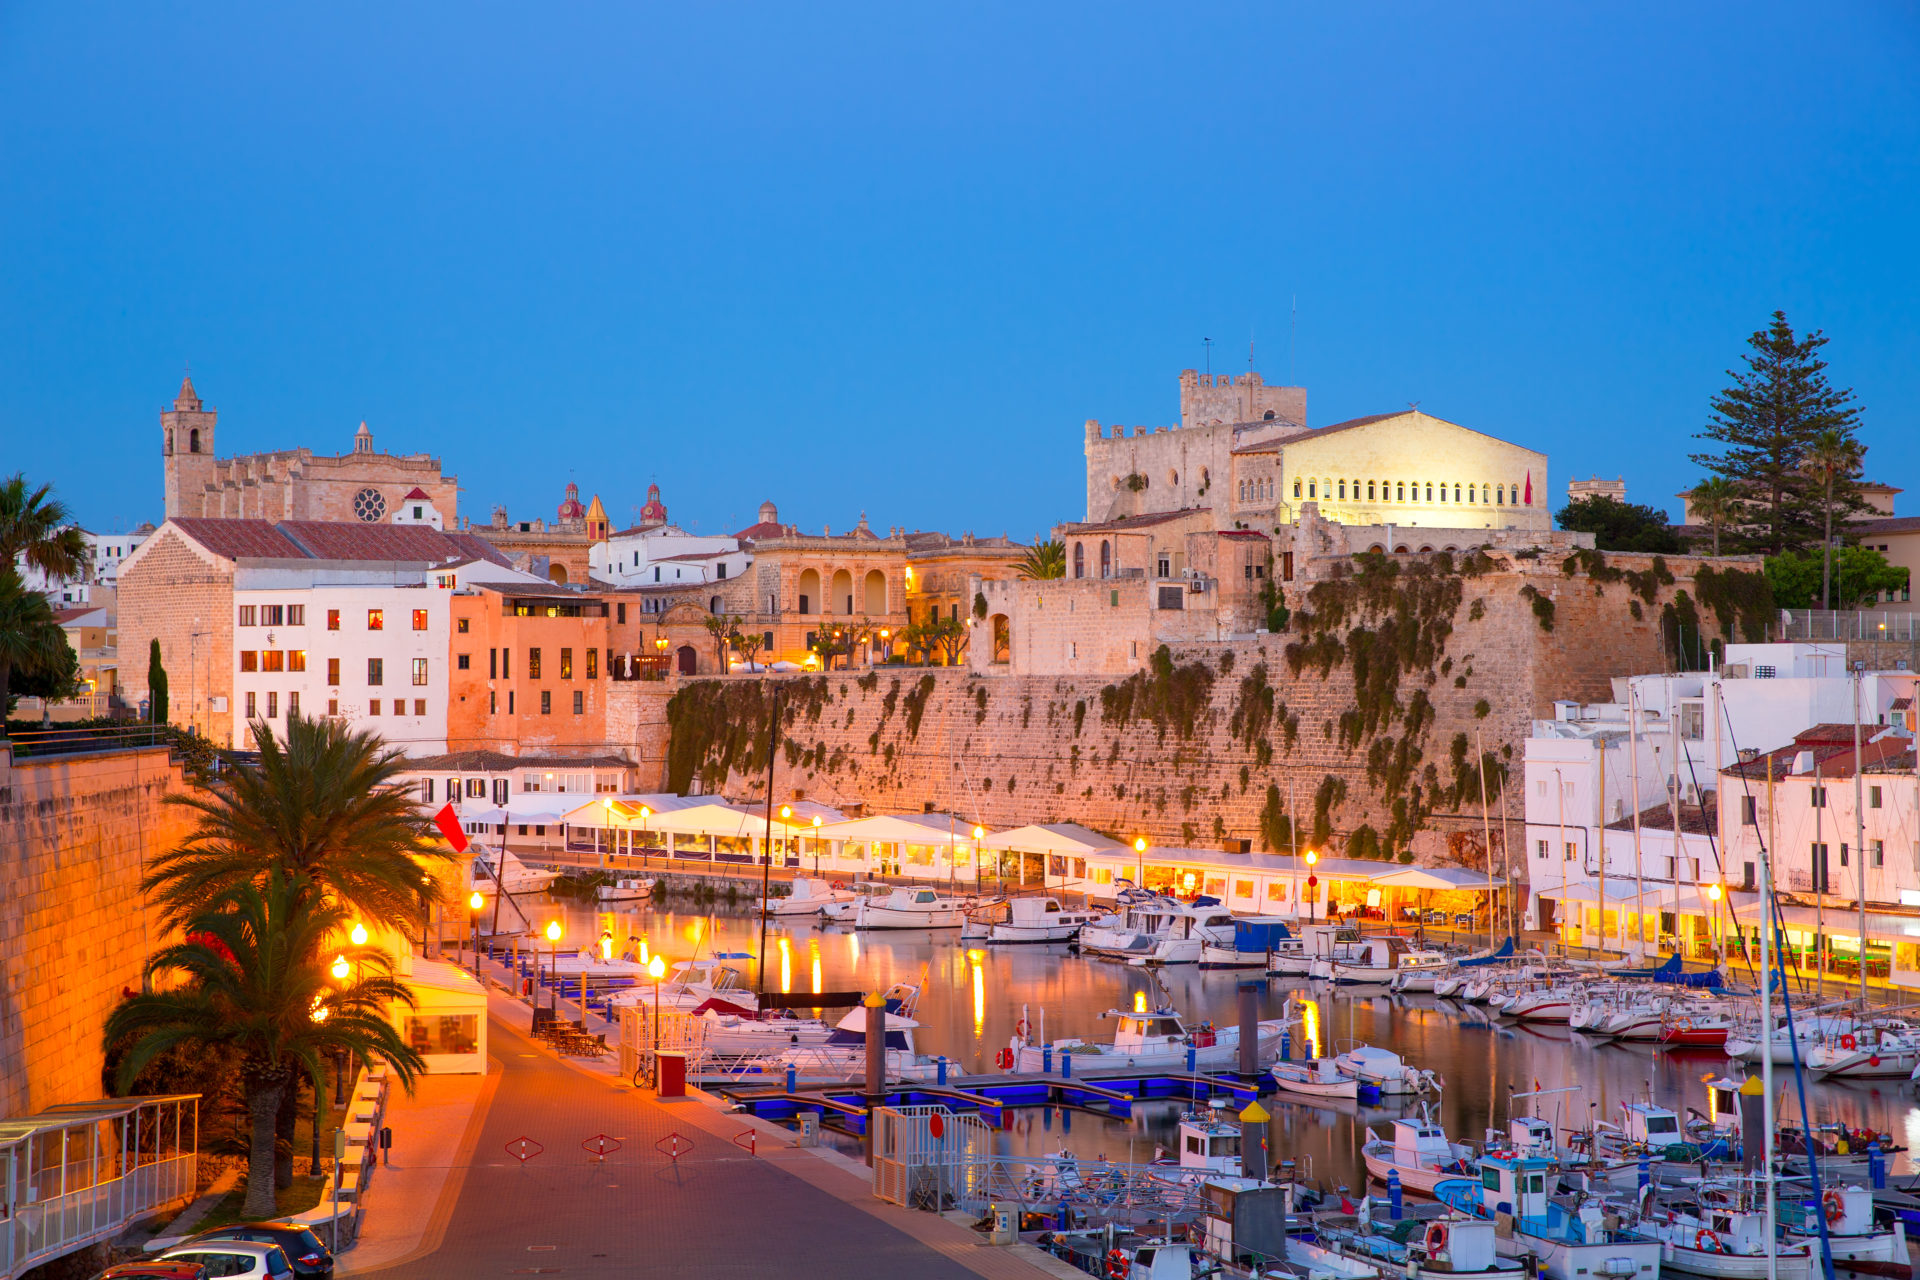 Ciutadella marina and cathedral, Menorca, Balearic islands, Spain